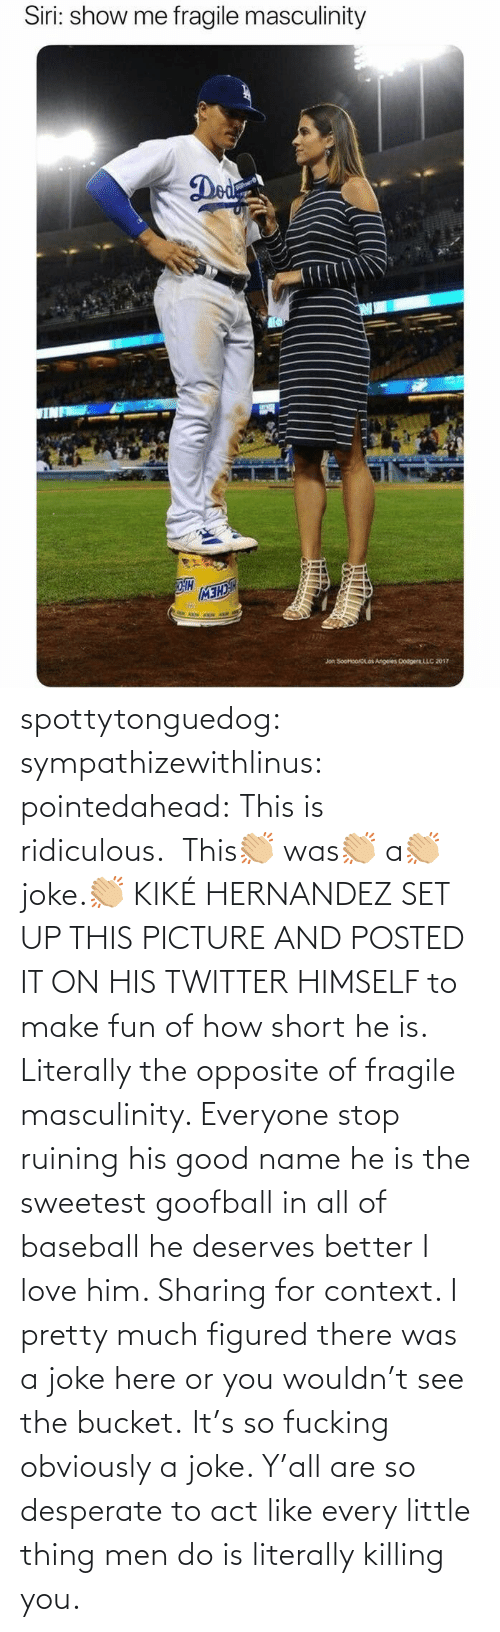 everyone: spottytonguedog:  sympathizewithlinus:   pointedahead: This is ridiculous.  This👏🏼 was👏🏼 a👏🏼 joke.👏🏼 KIKÉ HERNANDEZ SET UP THIS PICTURE AND POSTED IT ON HIS TWITTER HIMSELF to make fun of how short he is. Literally the opposite of fragile masculinity. Everyone stop ruining his good name he is the sweetest goofball in all of baseball he deserves better I love him.    Sharing for context. I pretty much figured there was a joke here or you wouldn't see the bucket.    It's so fucking obviously a joke. Y'all are so desperate to act like every little thing men do is literally killing you.